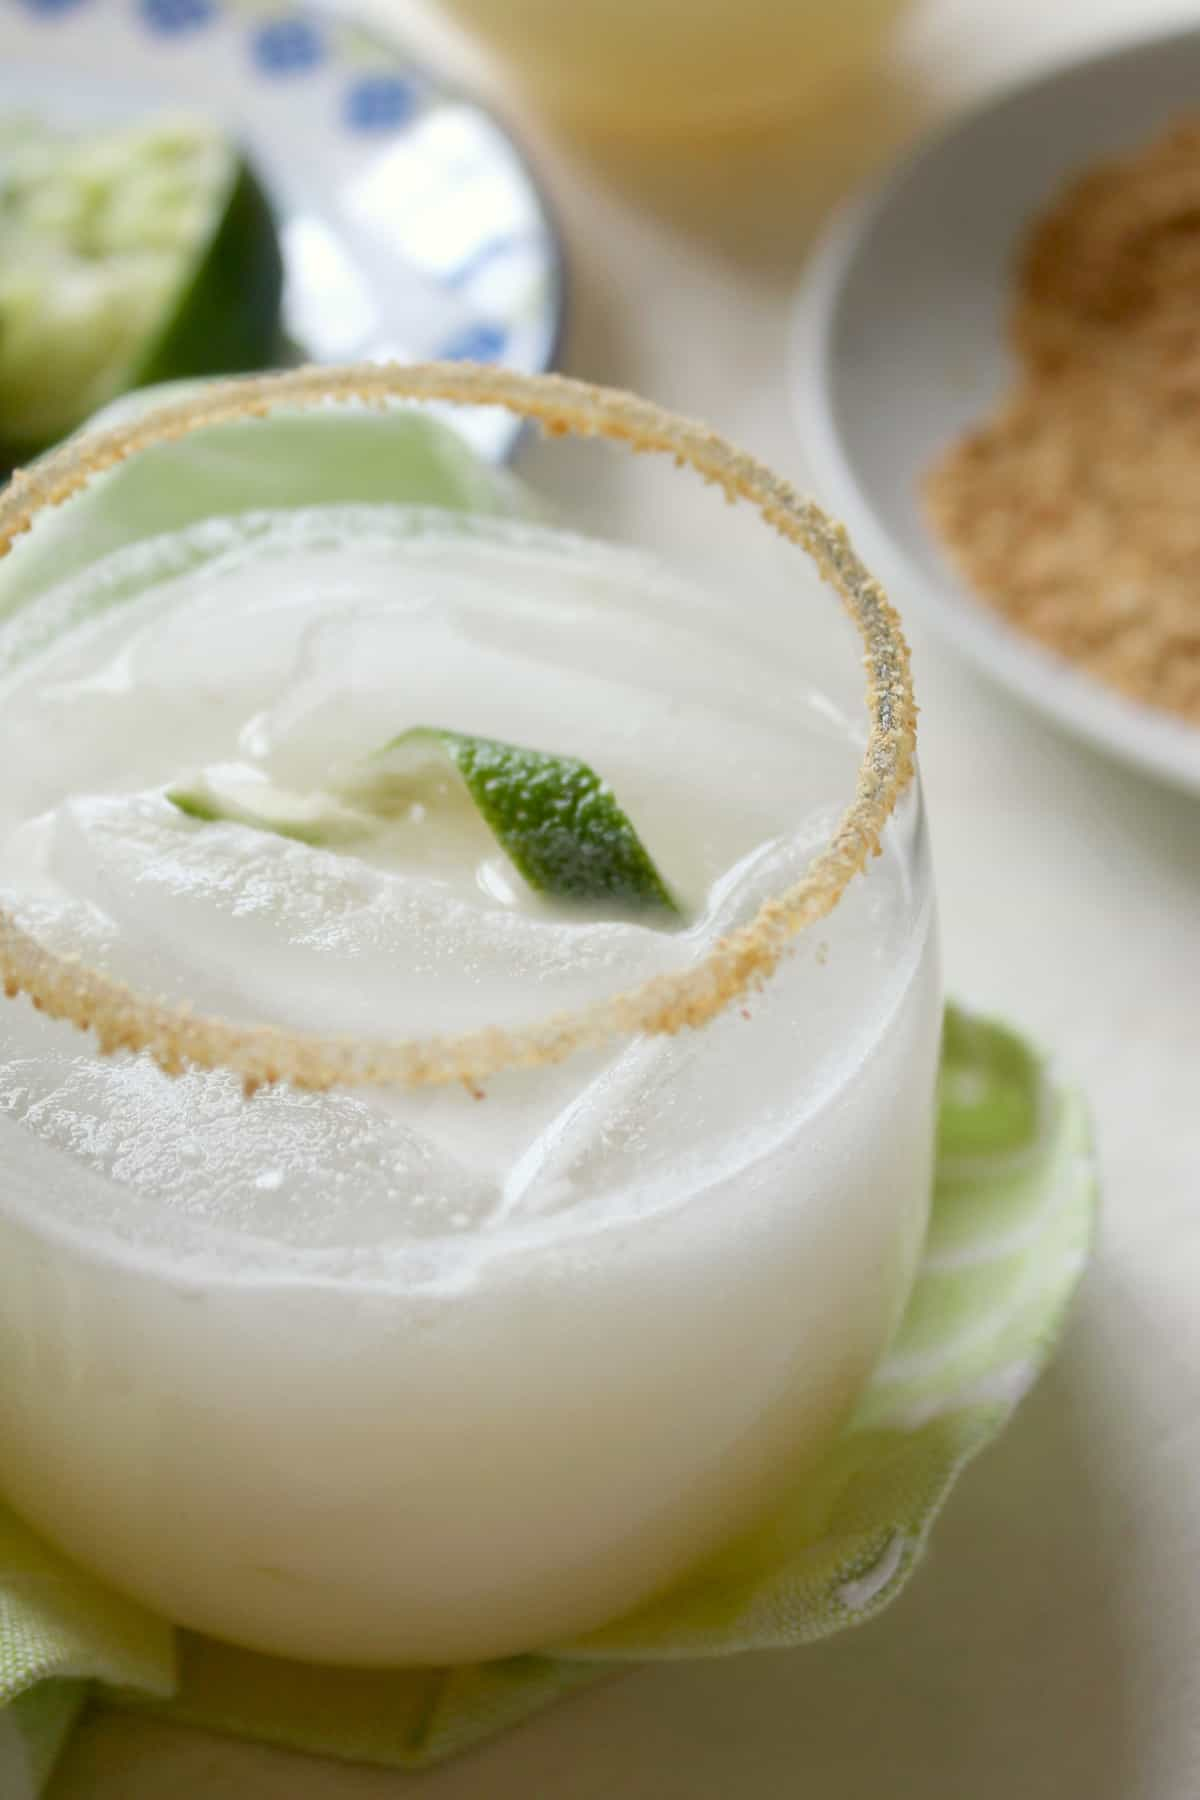 Coconut Key Lime Pie Coolers! The combination of tart lime juice and creamy coconut milk will make you reach for another sip of this tasty drink and remind you of sweet and smooth key lime pie with an extra tropical twist. Rim the glass with crushed graham crackers to drive the flavor home!